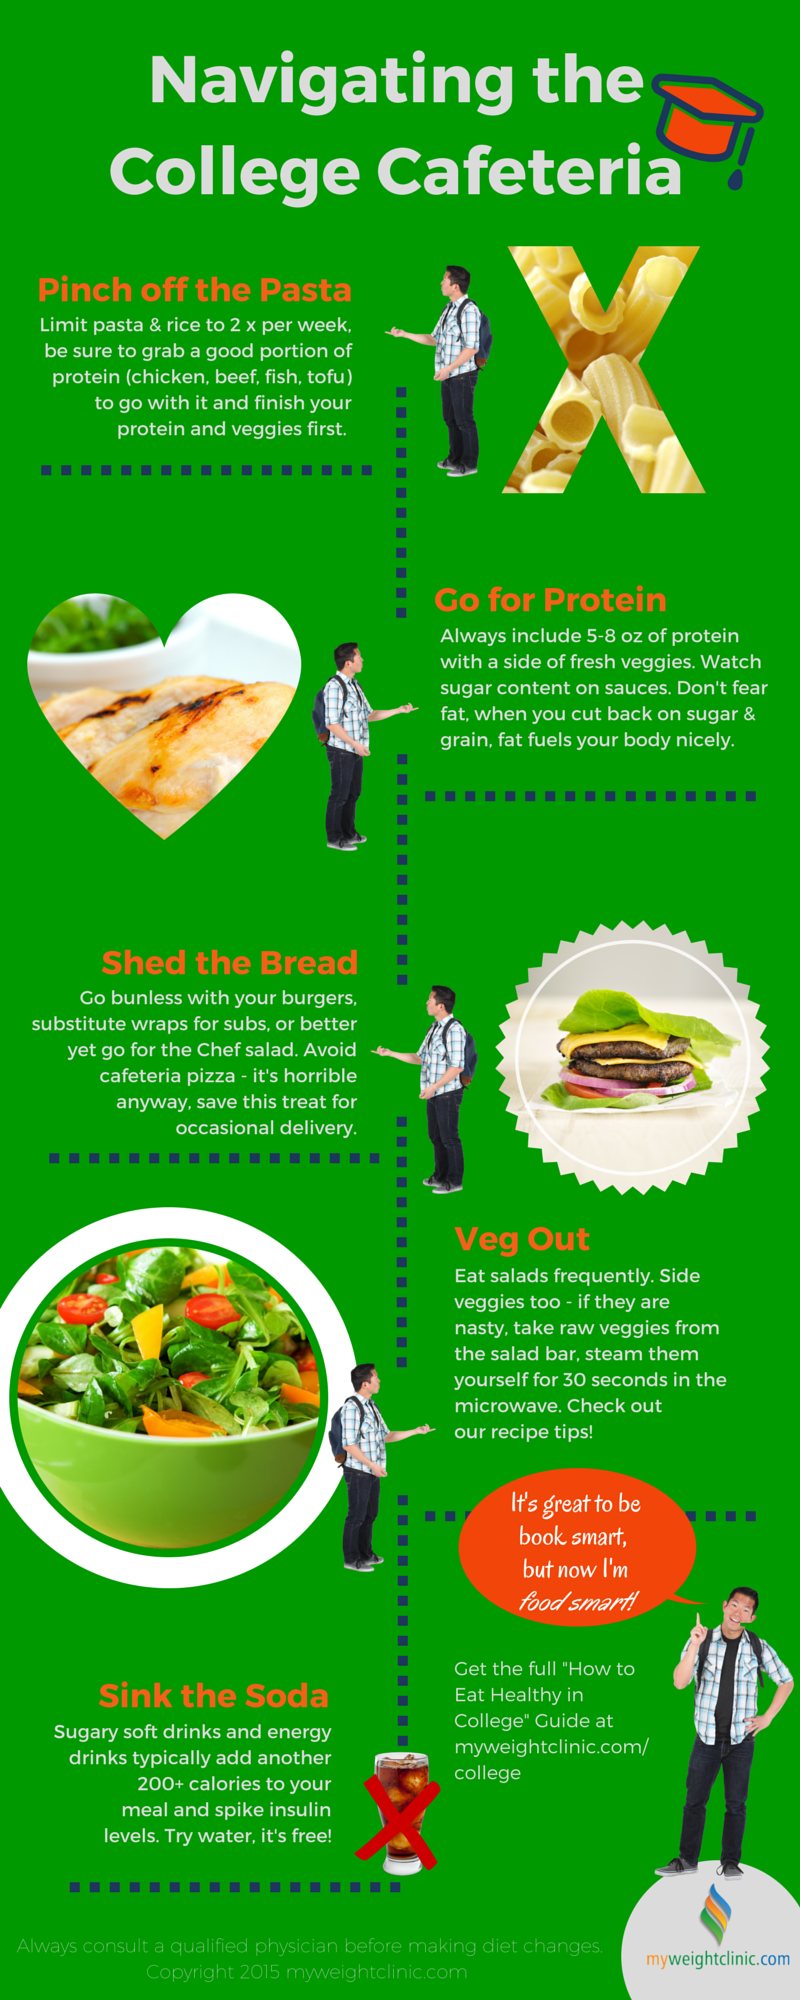 How to eat healthy in college pdf 33 diet tips infographic embed navigating the college cafeteria on your site copy and paste the code below ccuart Gallery